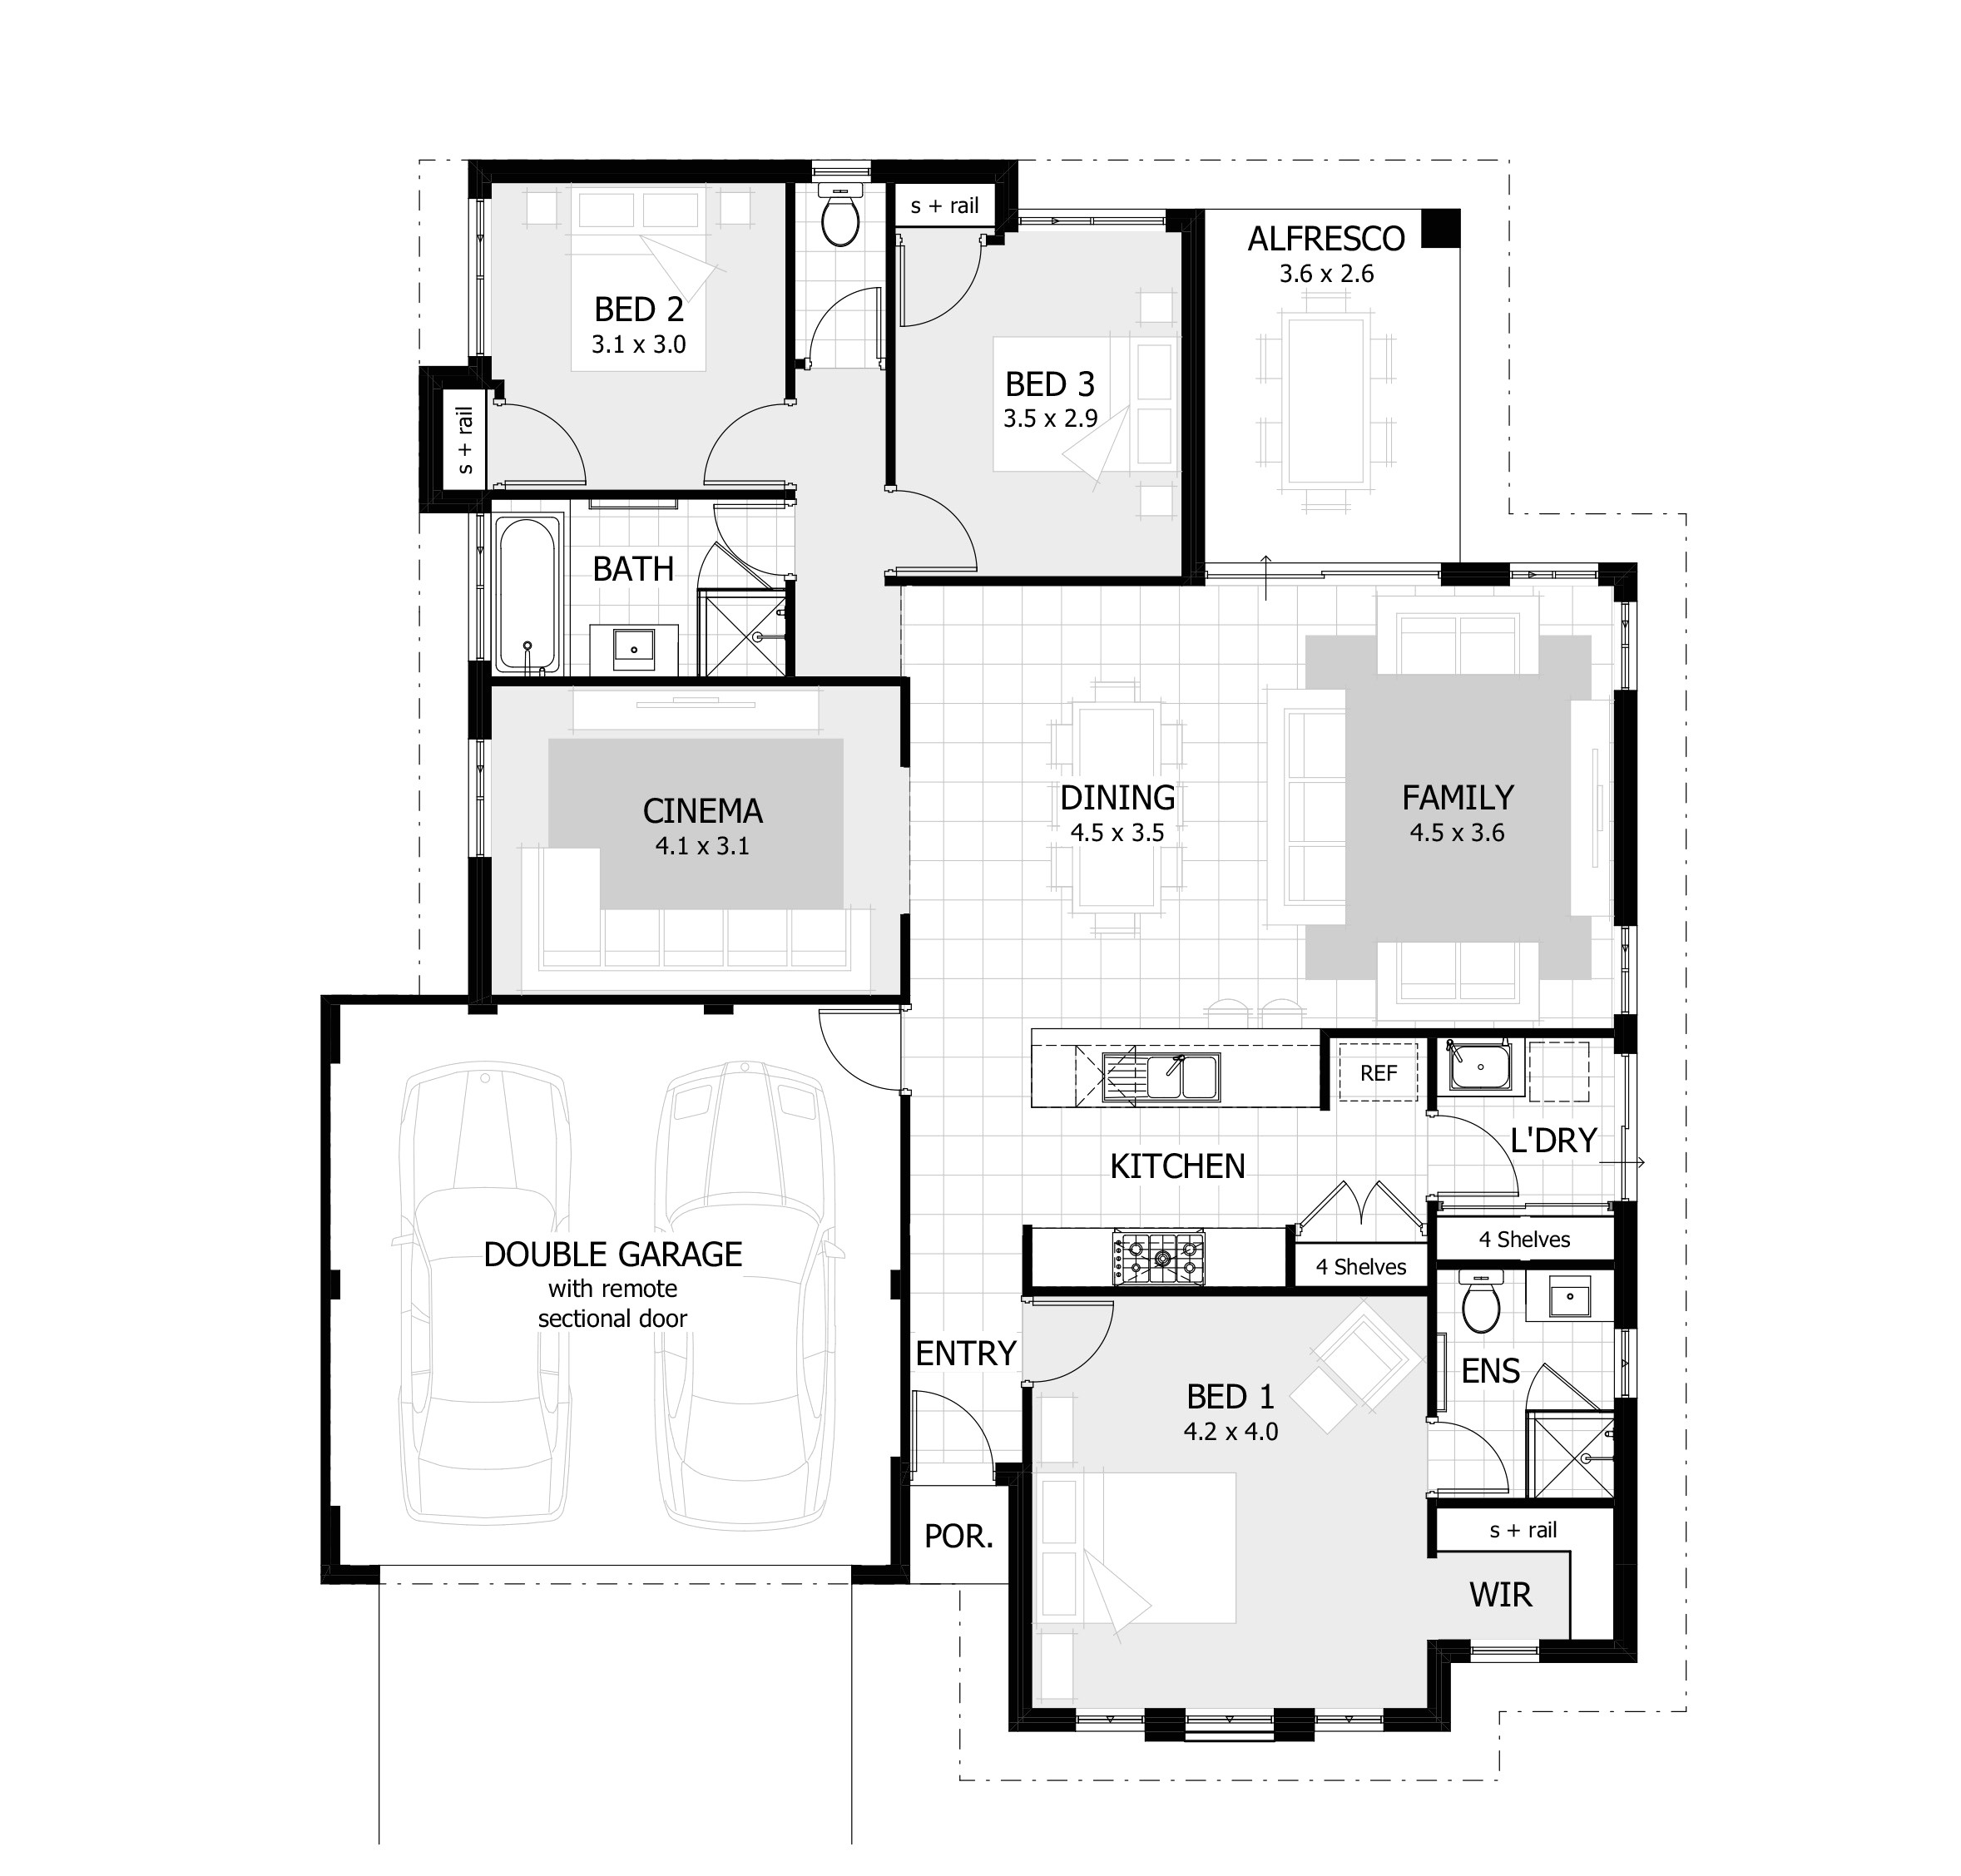 4 bedroom house plan without garage